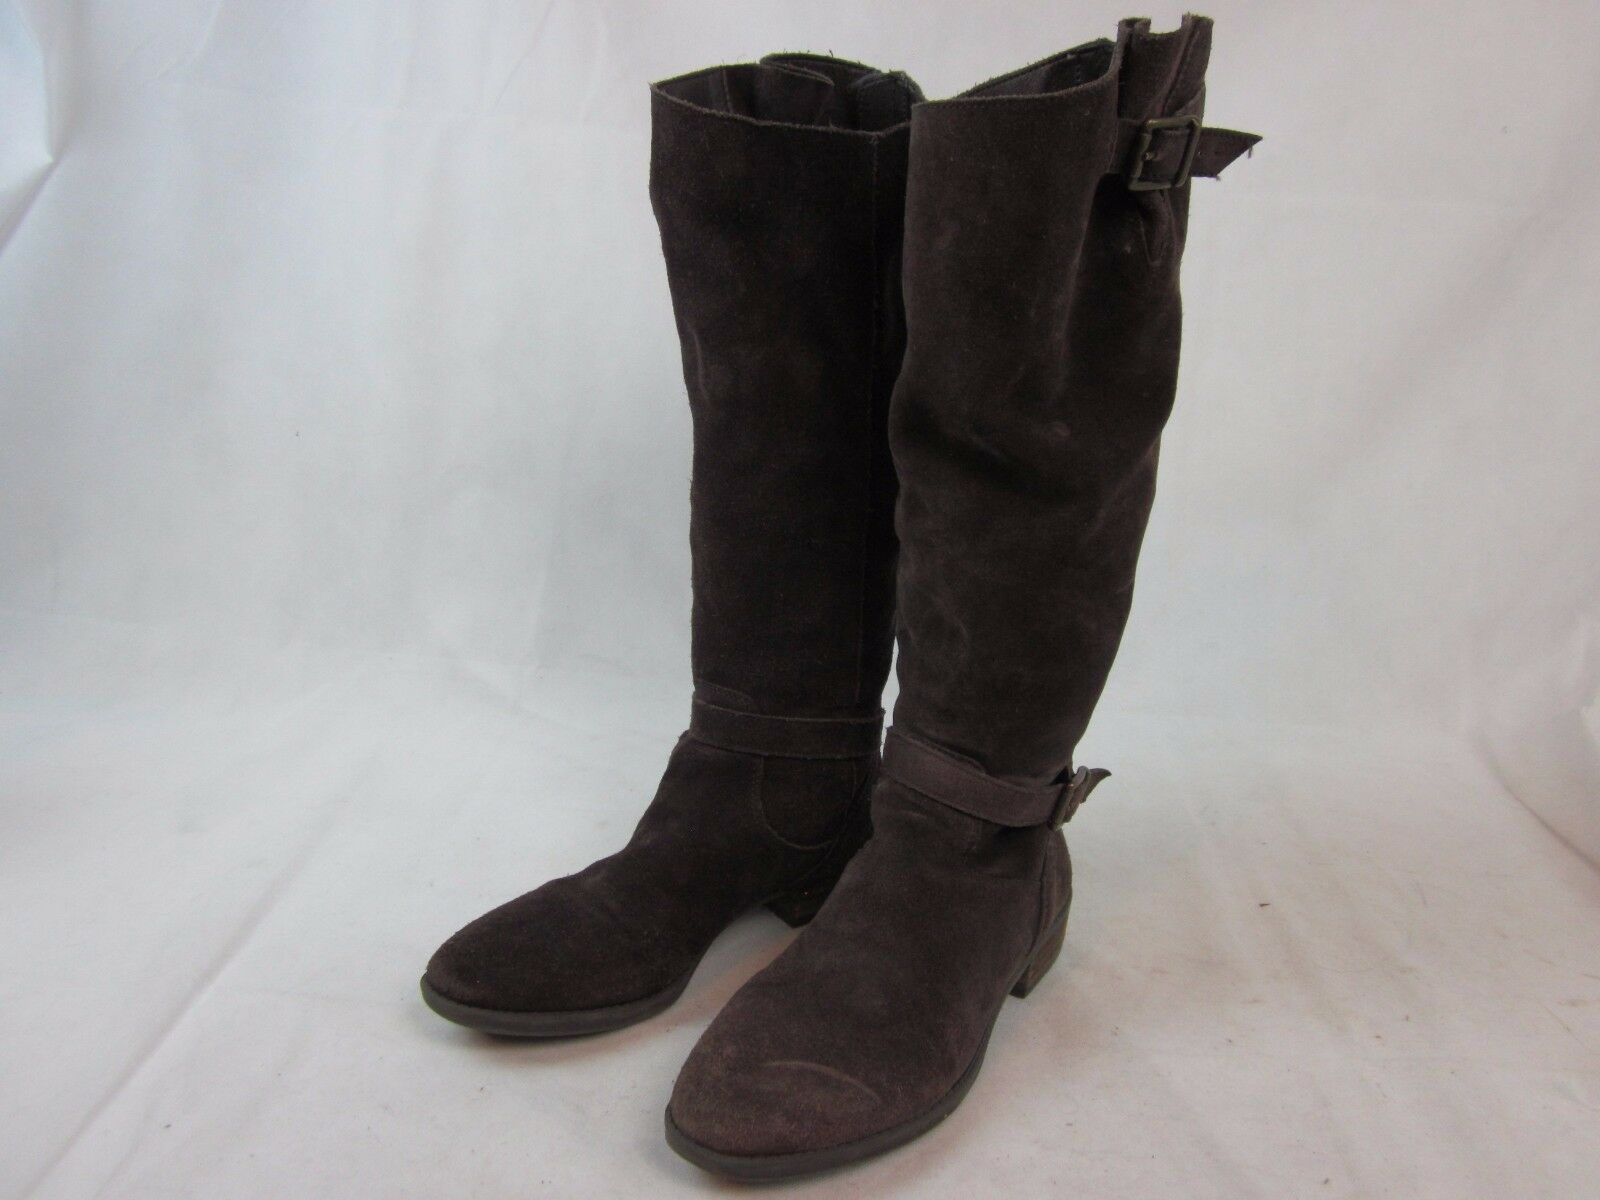 SAM EDELMAN WOMEN'S BROWN SUEDE BOOTS WOMEN'S 40